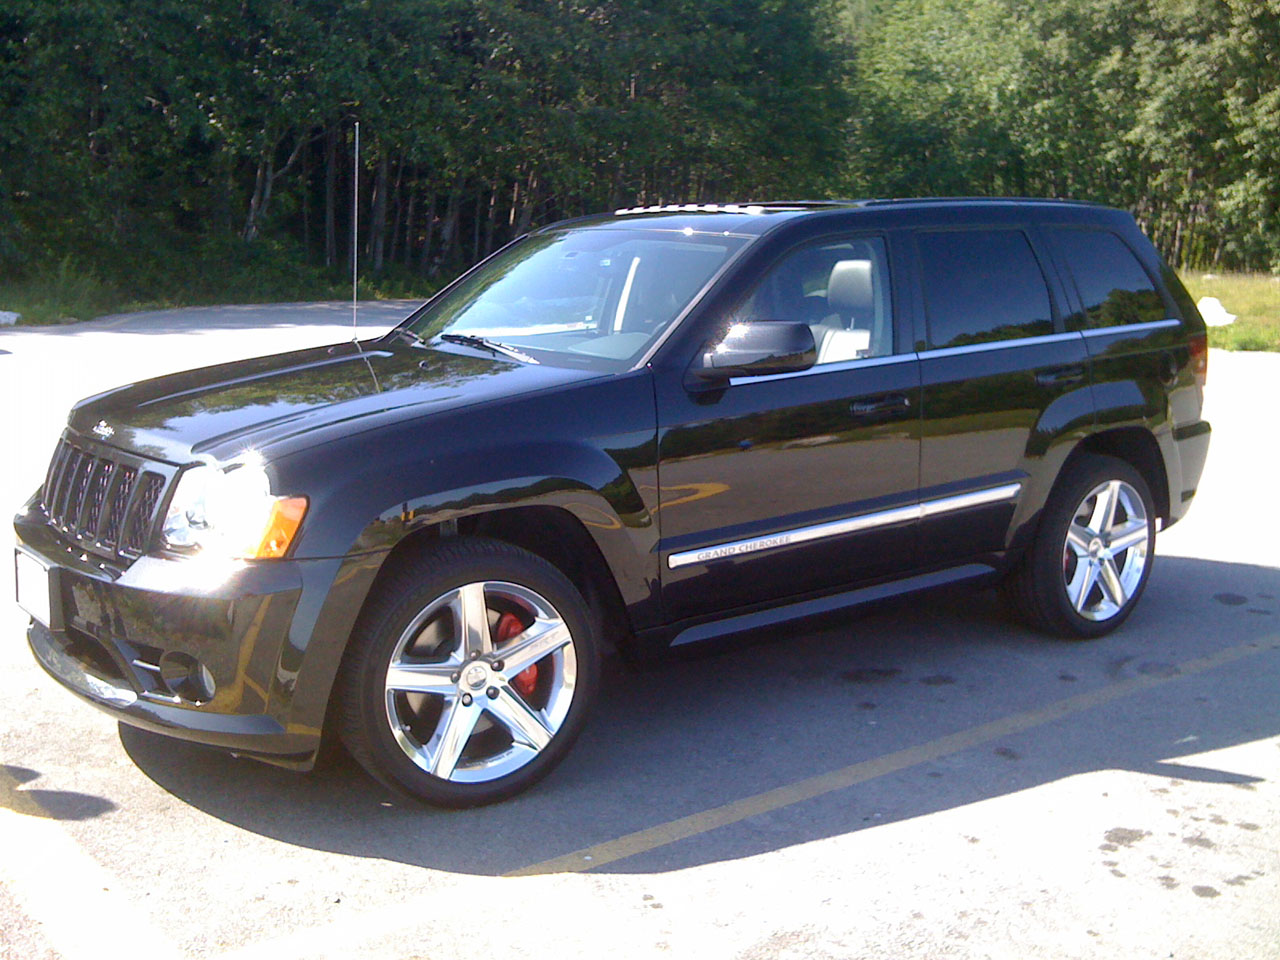 2009 Jeep Cherokee SRT8 CMR Tune